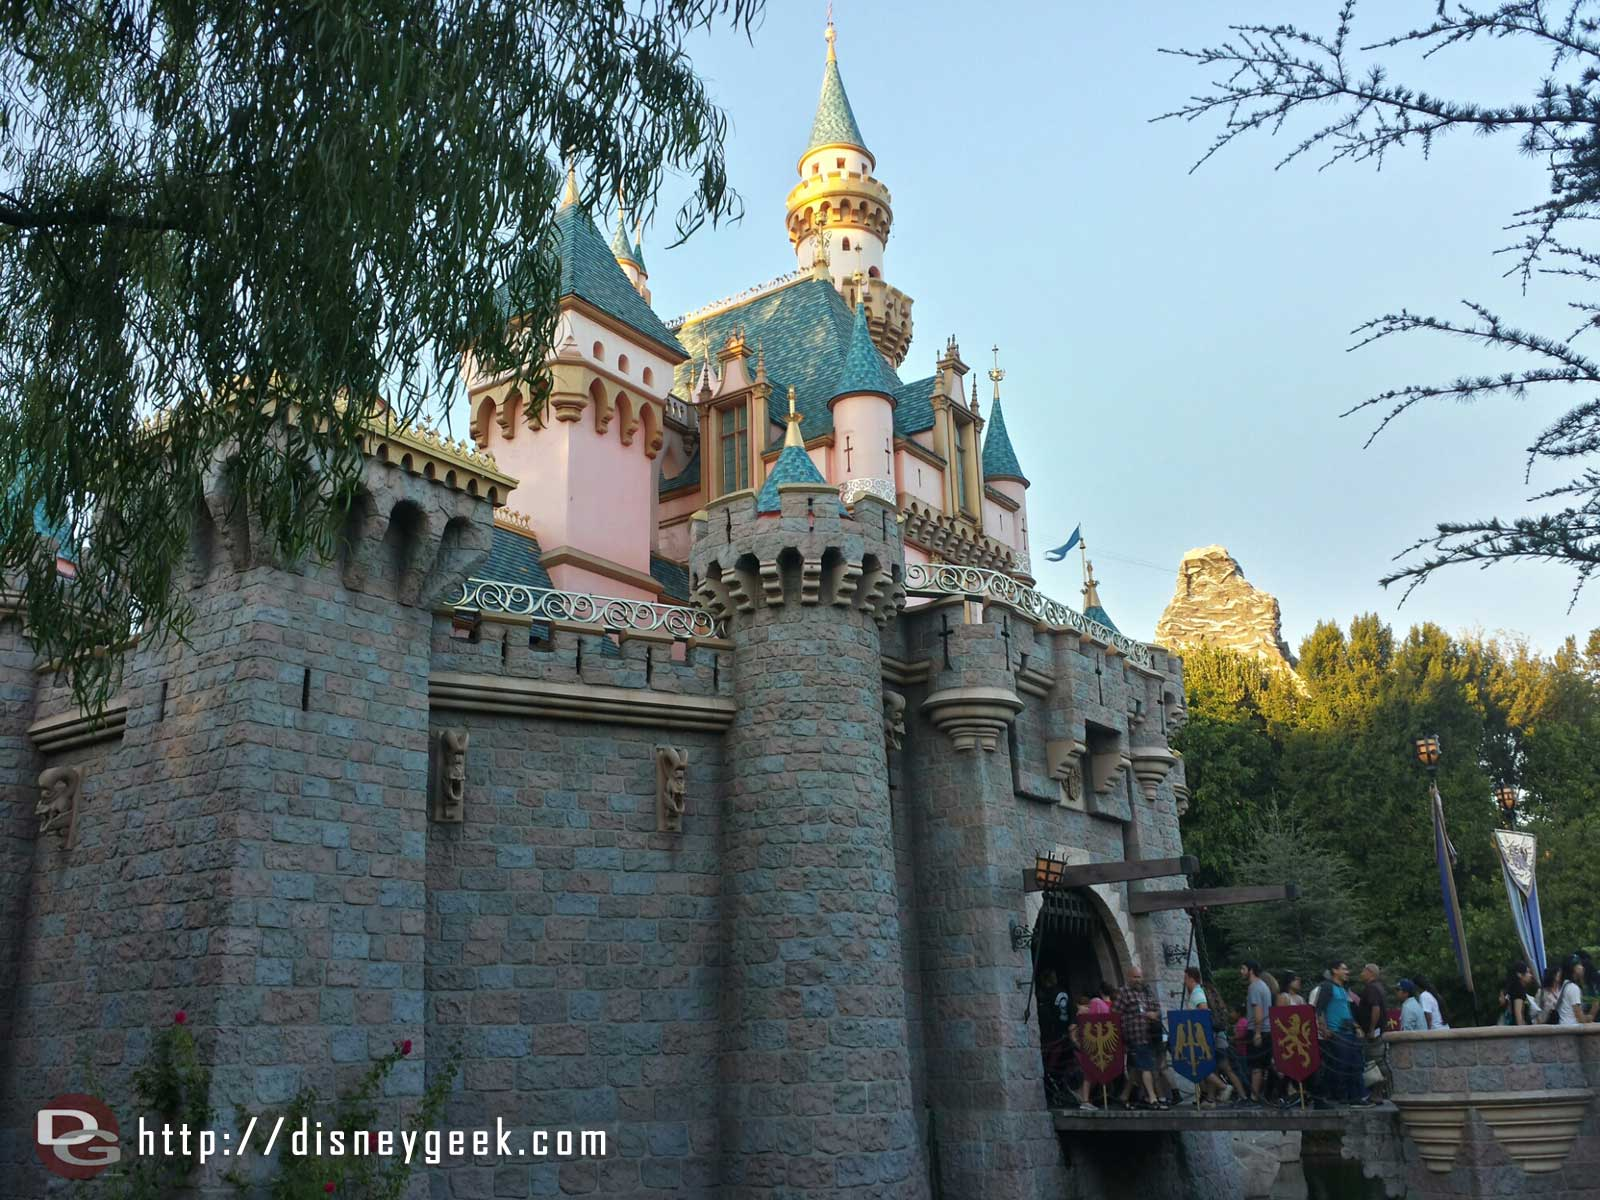 Sleeping Beauty Castle with the Matterhorn in the background #Disneyland